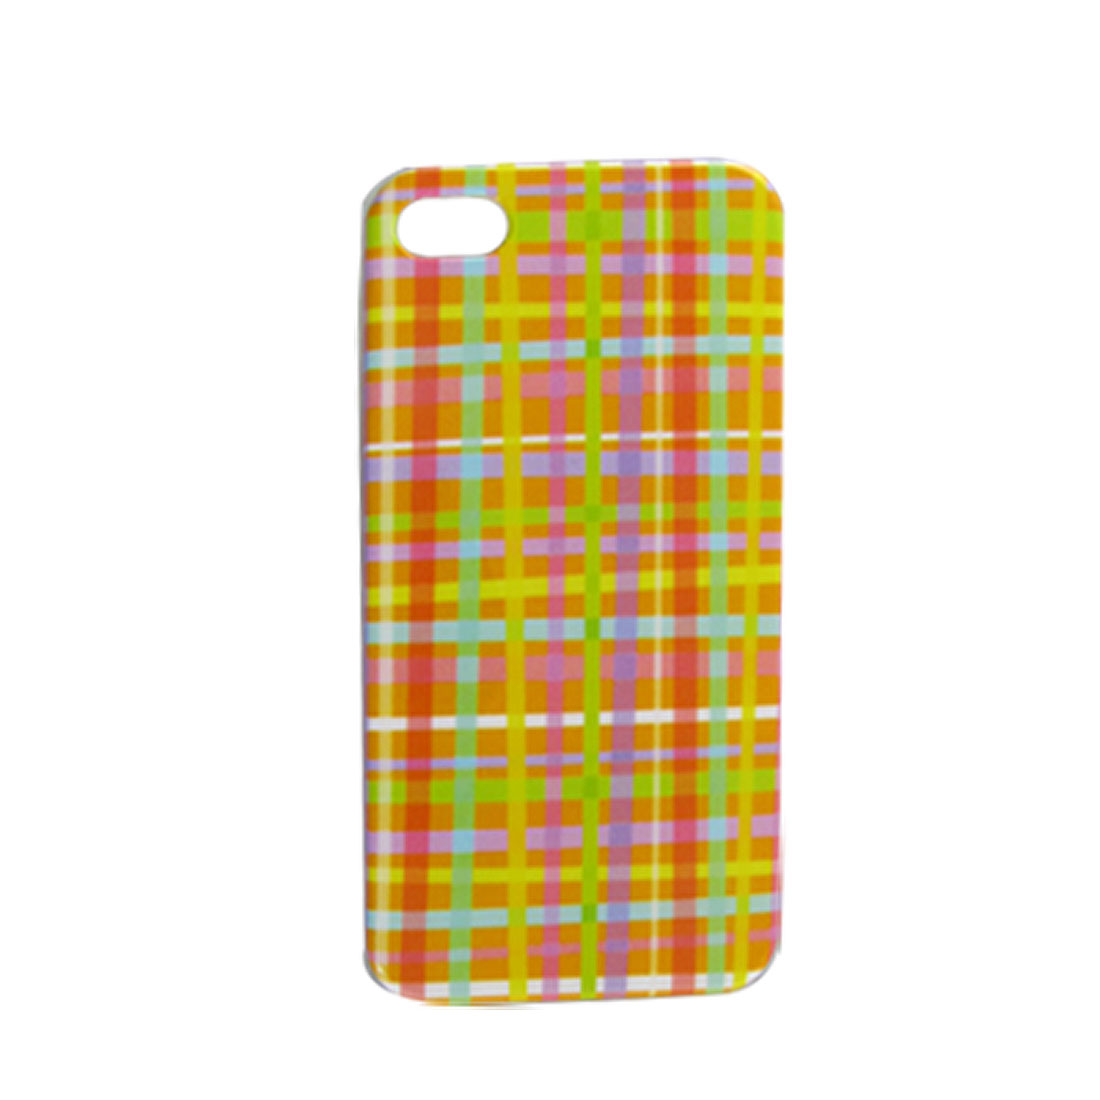 IMD Grid Pattern Hard Plastic Back Case Cover for iPhone 4 4G 4S